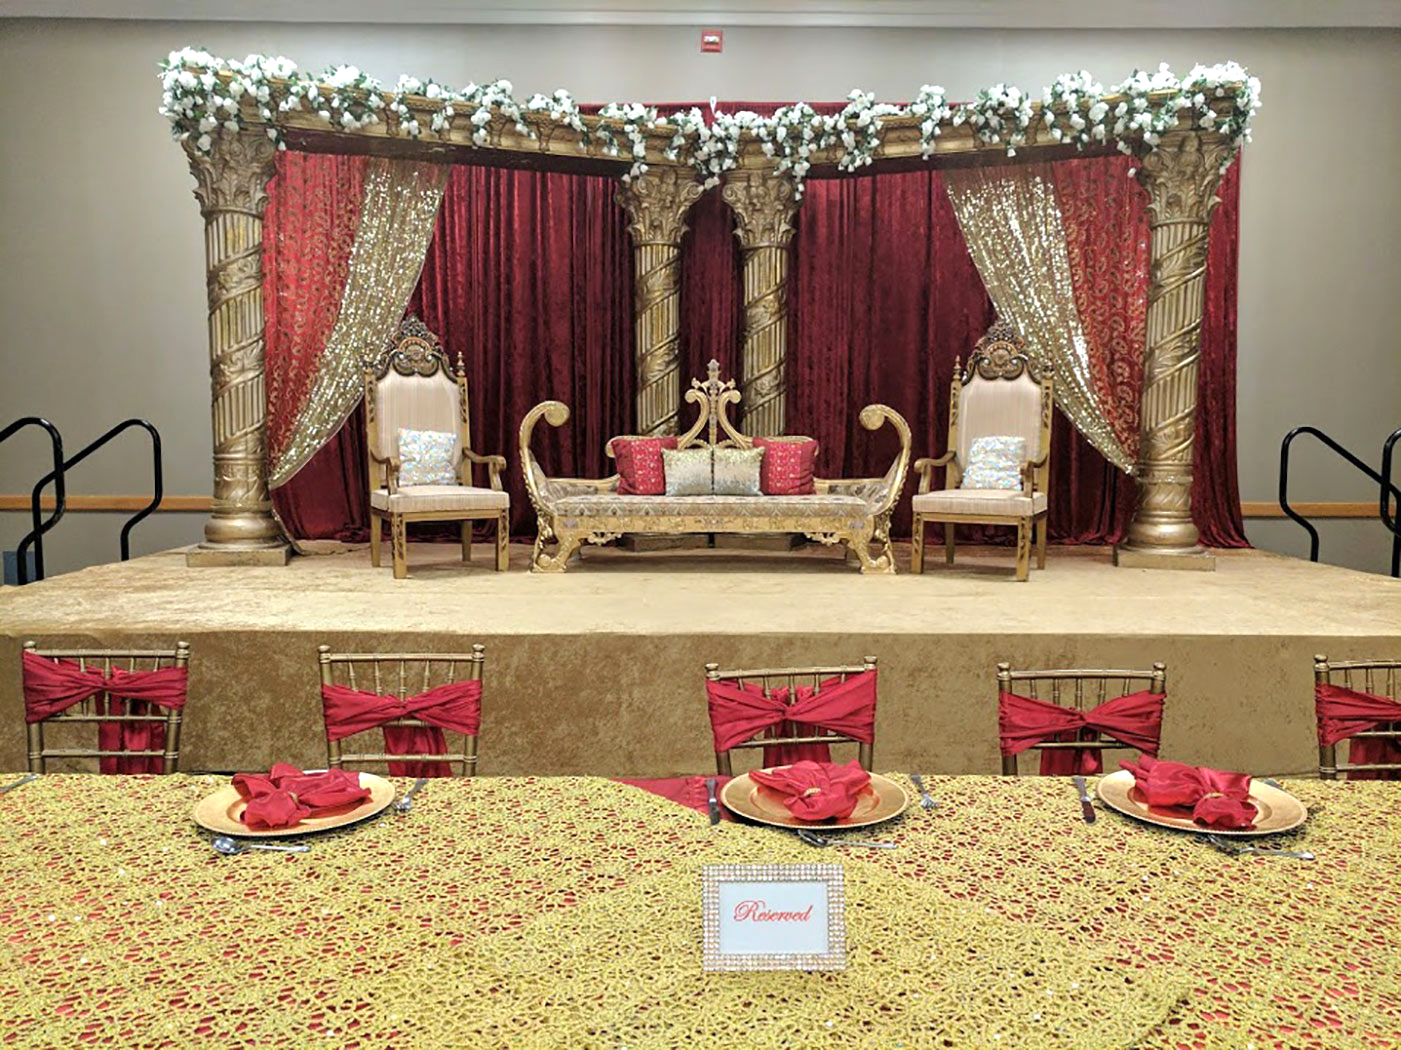 Ethnic wedding setup with red curtains and red pillows